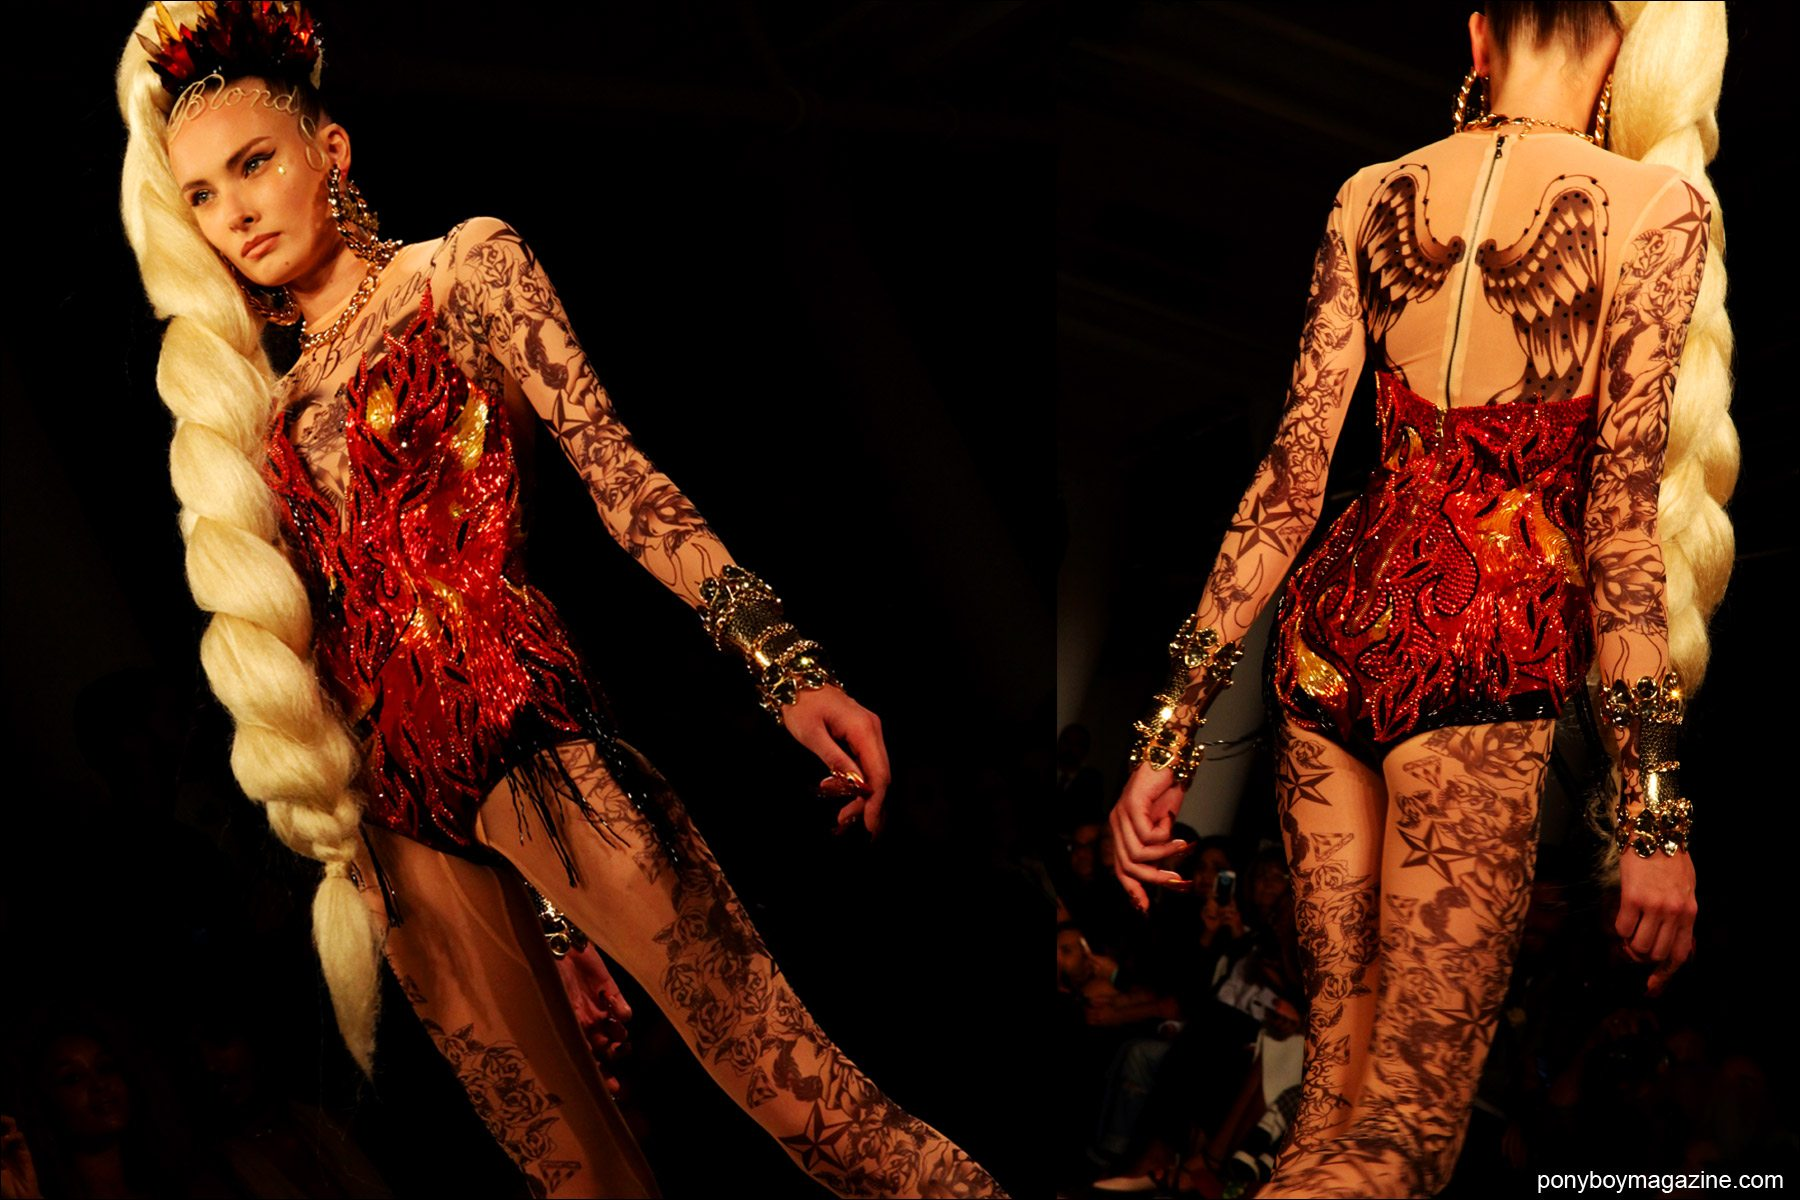 A tattoed bodysuit created by The Blonds NY, shown during New York Fashion Week at Milk Studios. Photos by Alexander Thompson for Ponyboy Magazine.